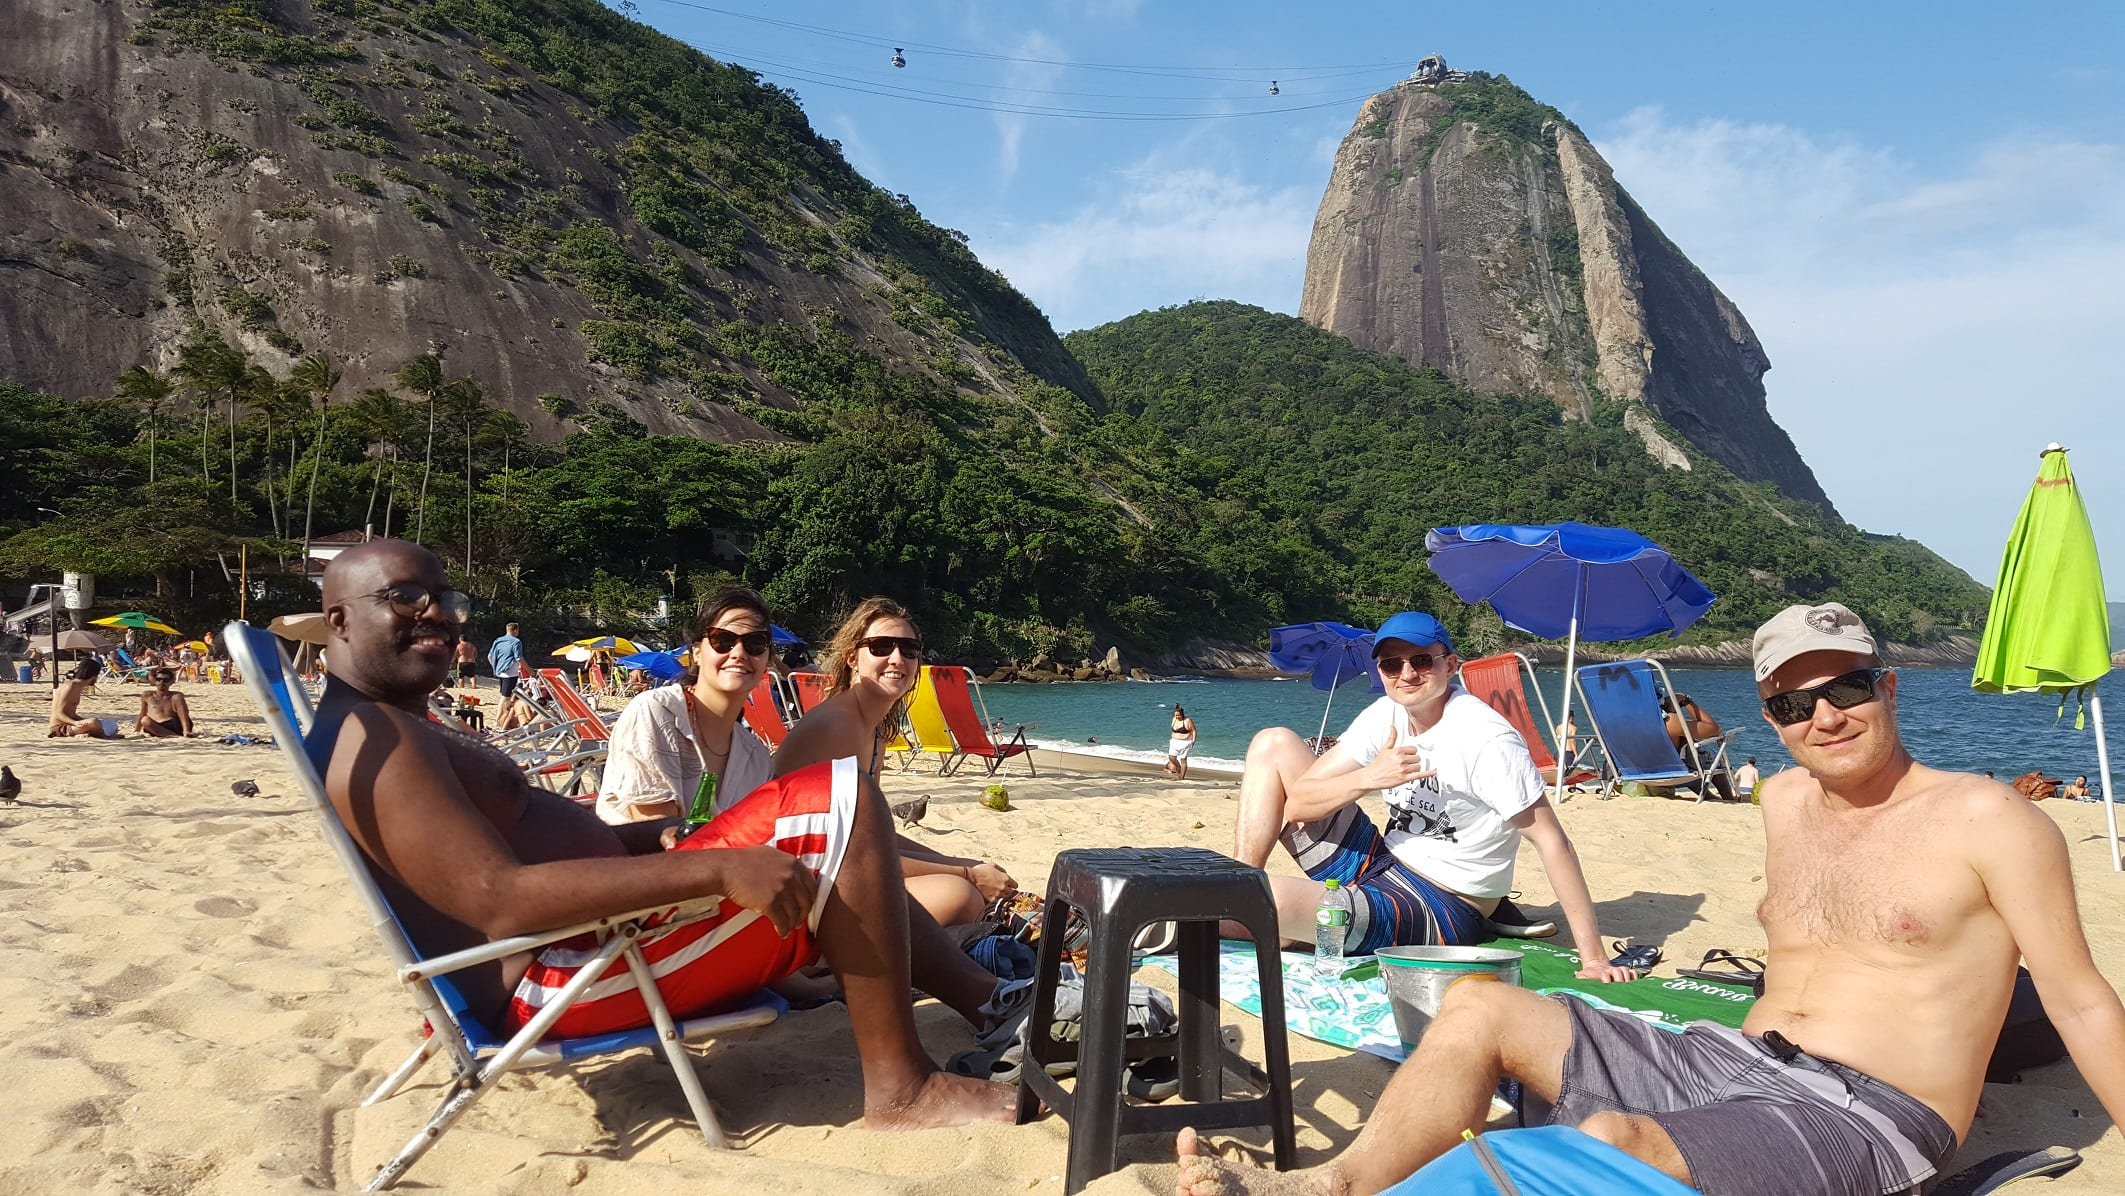 Our Favorite place in Rio de Janeiro is Urca. Amazing view of the Sugarloaf from Praia Vermelha